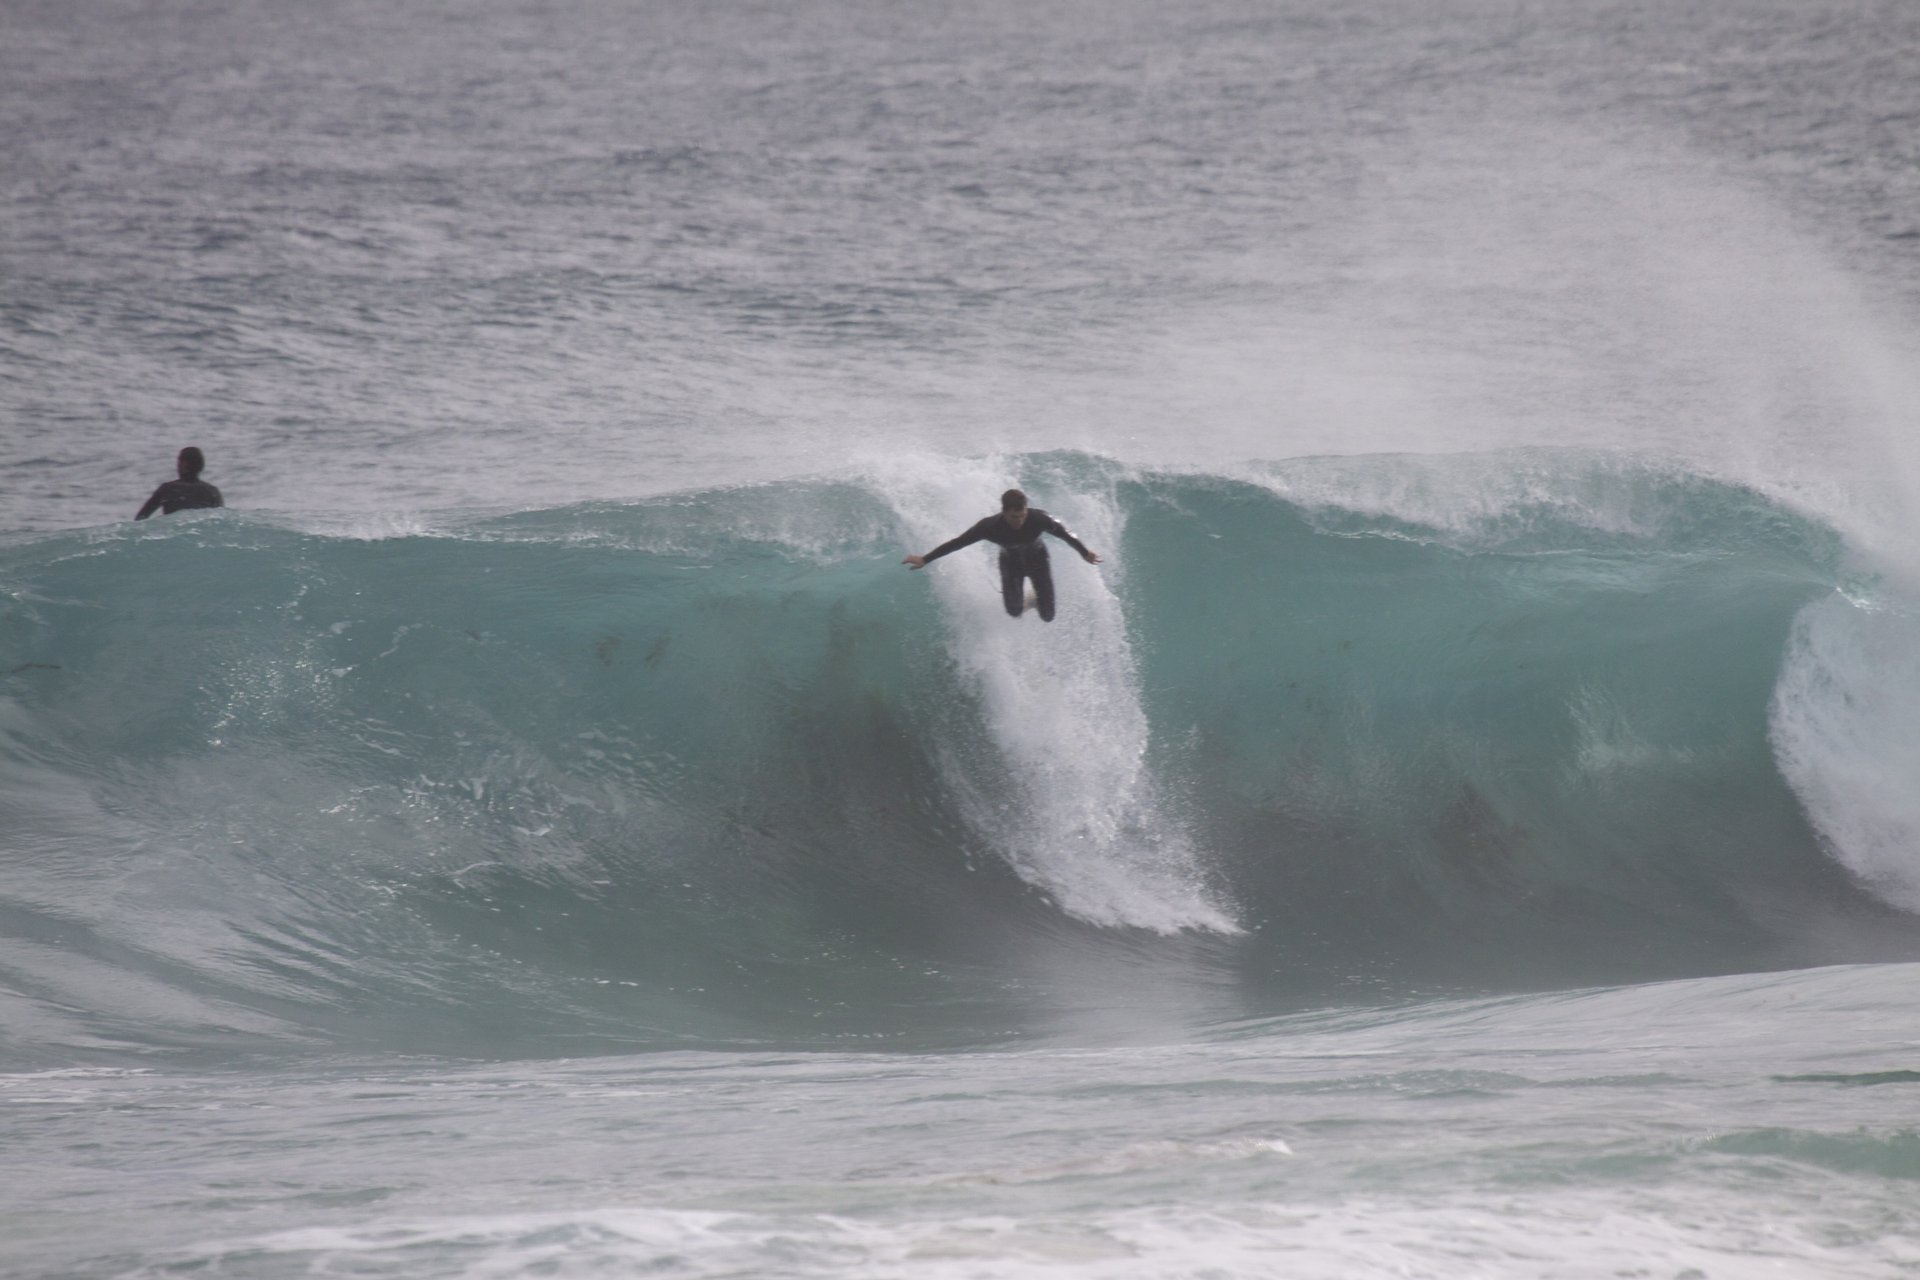 Dev Coote's photo of Yallingup